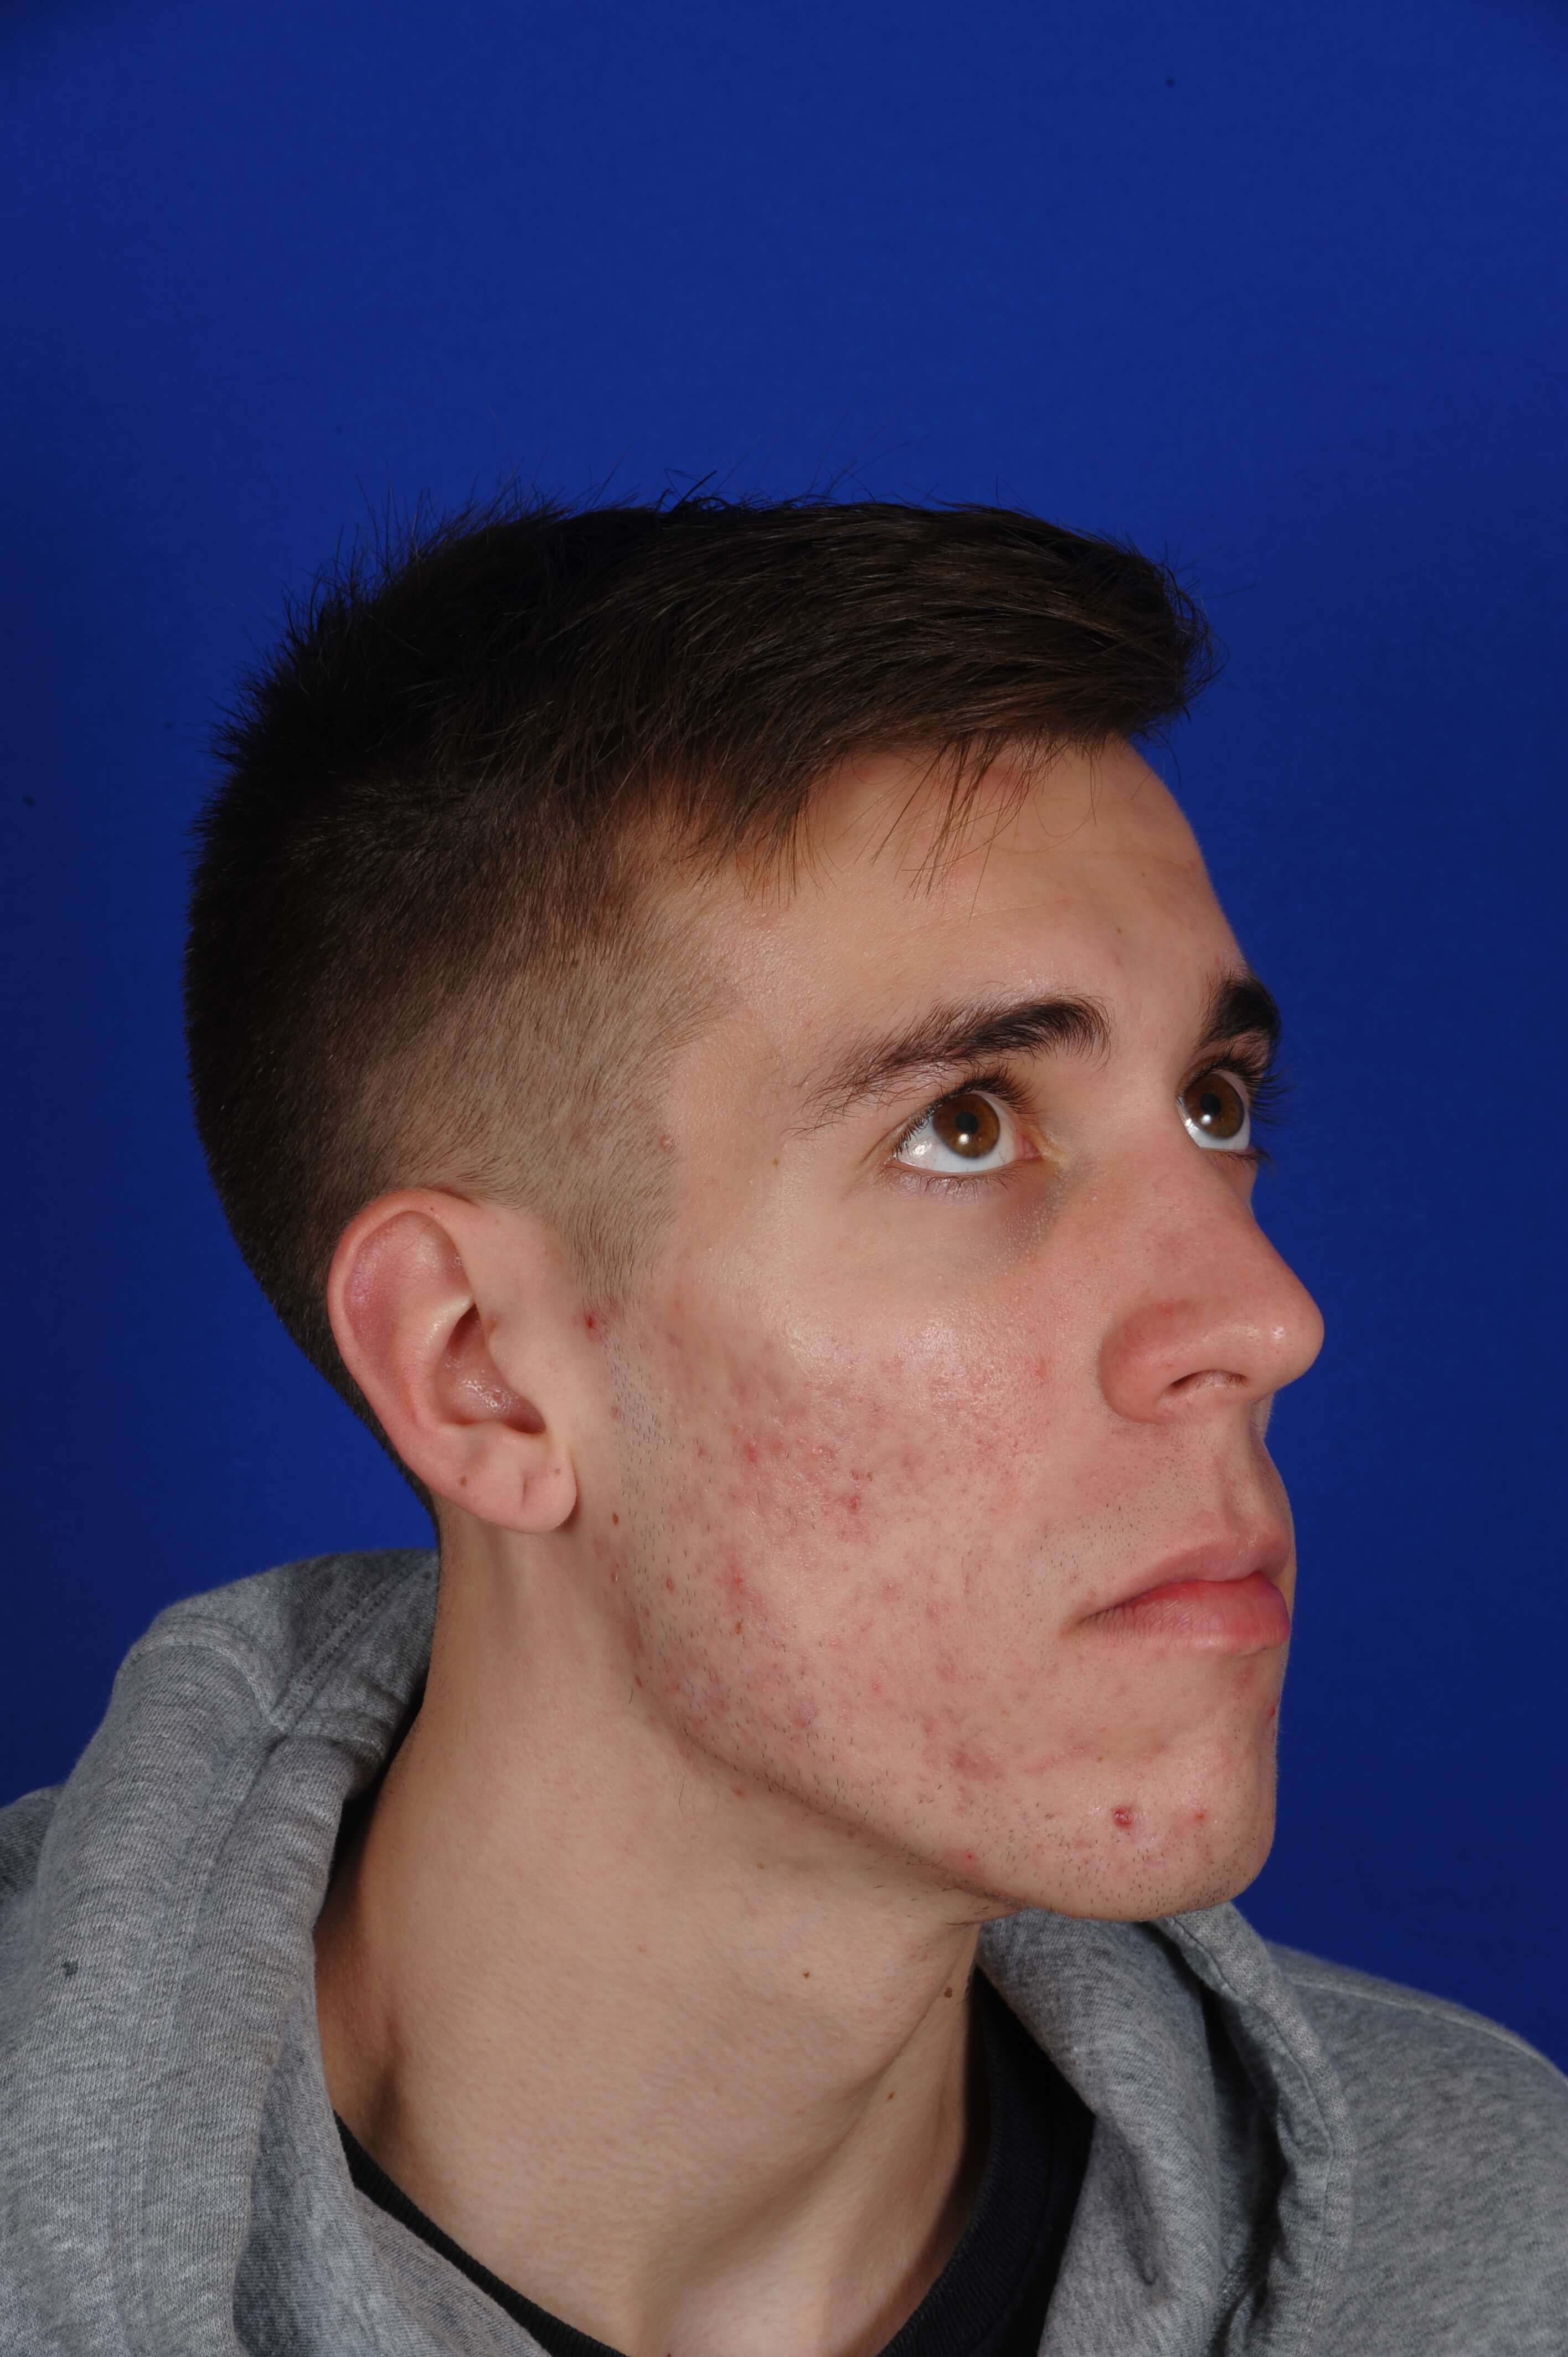 20 Year Old Male with Acne After